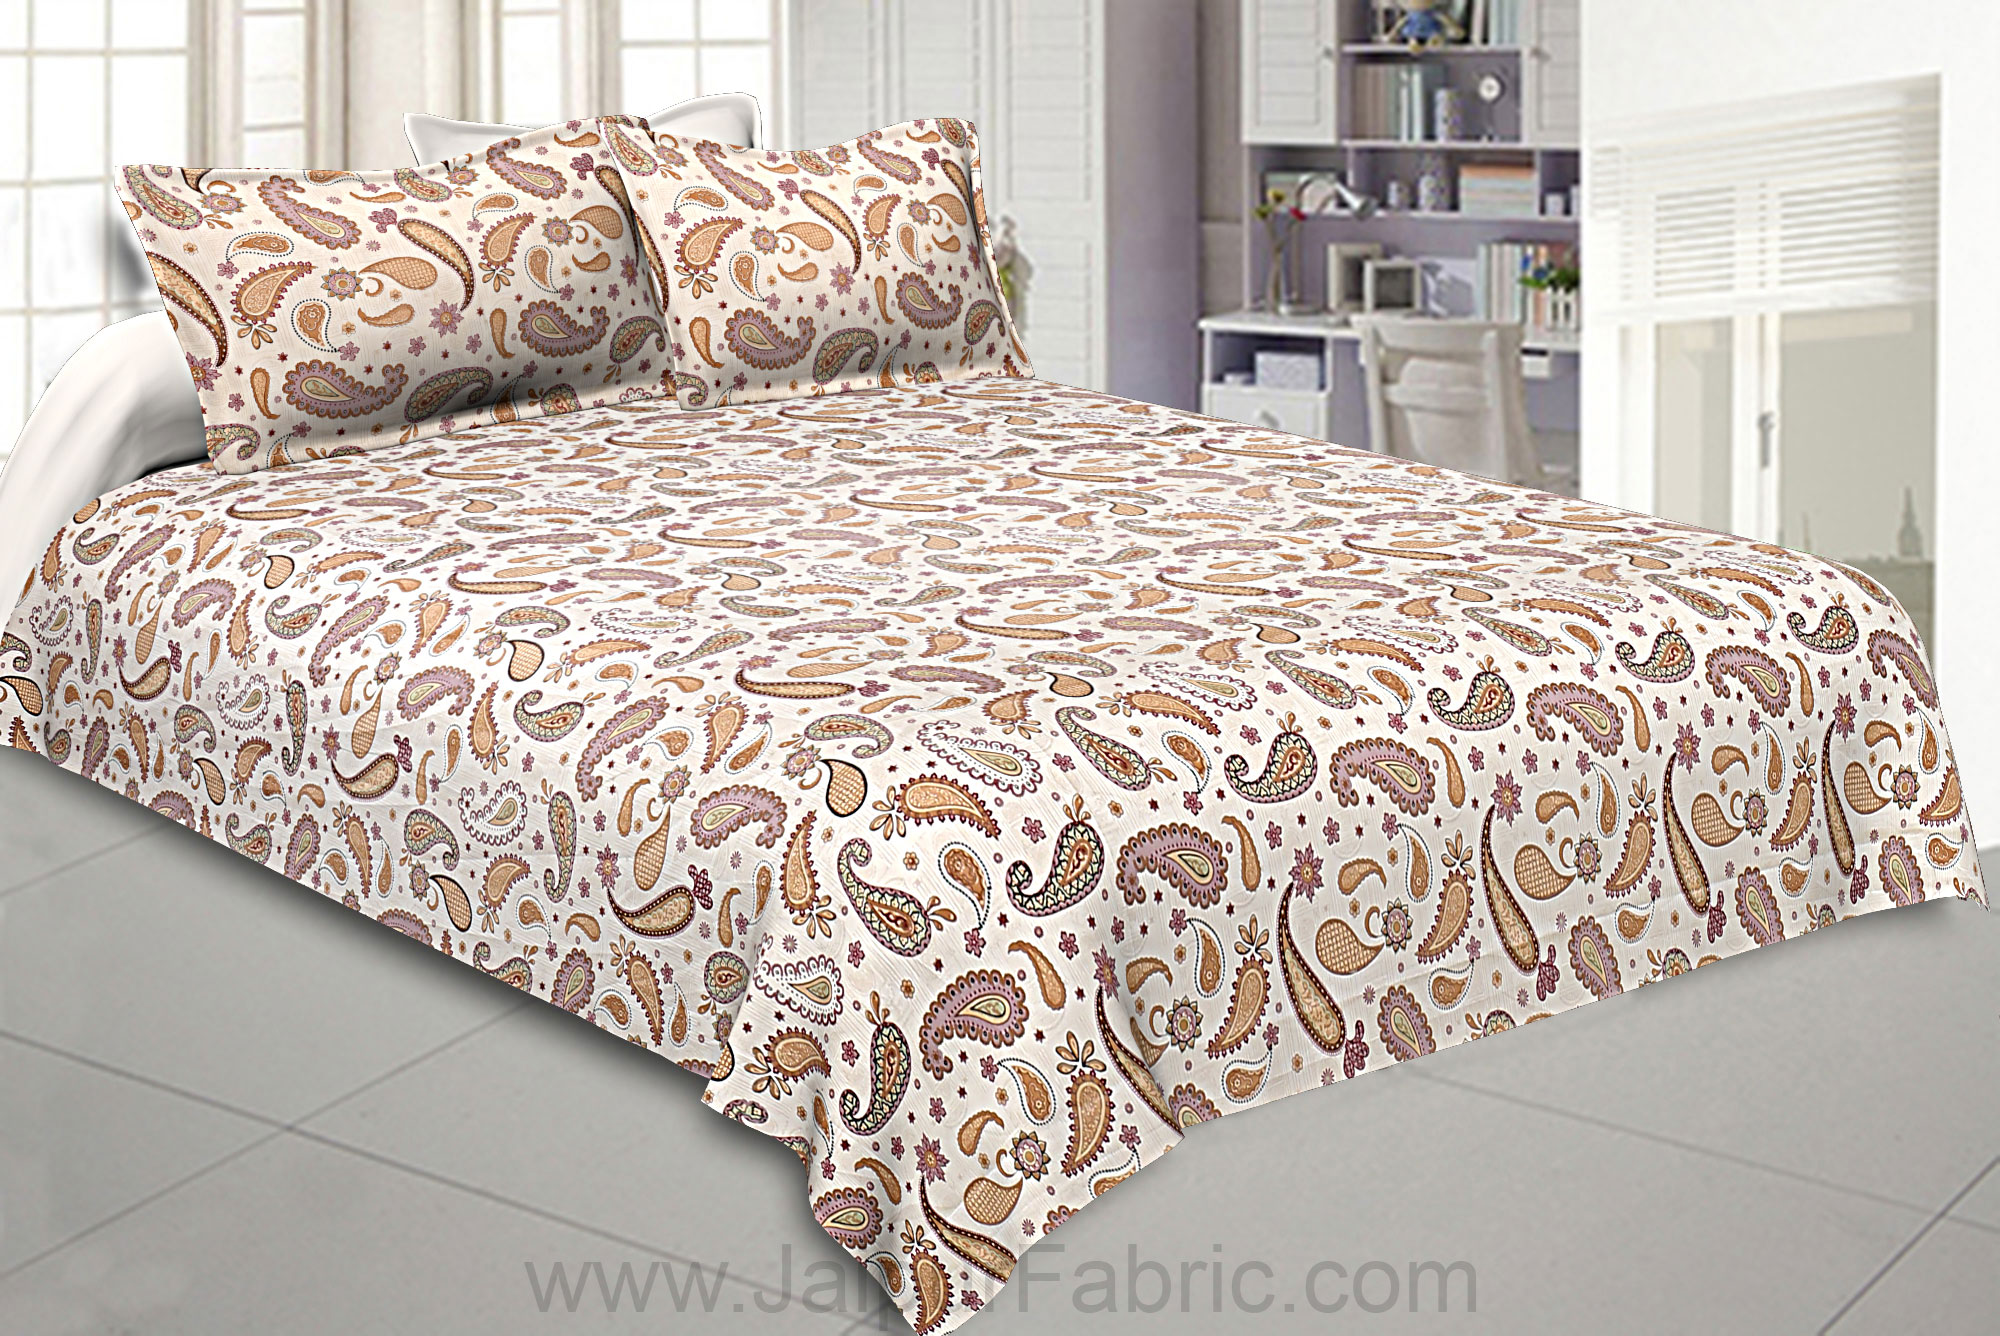 Bed in a Bag Paisley Creamish Pink Double BedSheet Comforter Combo